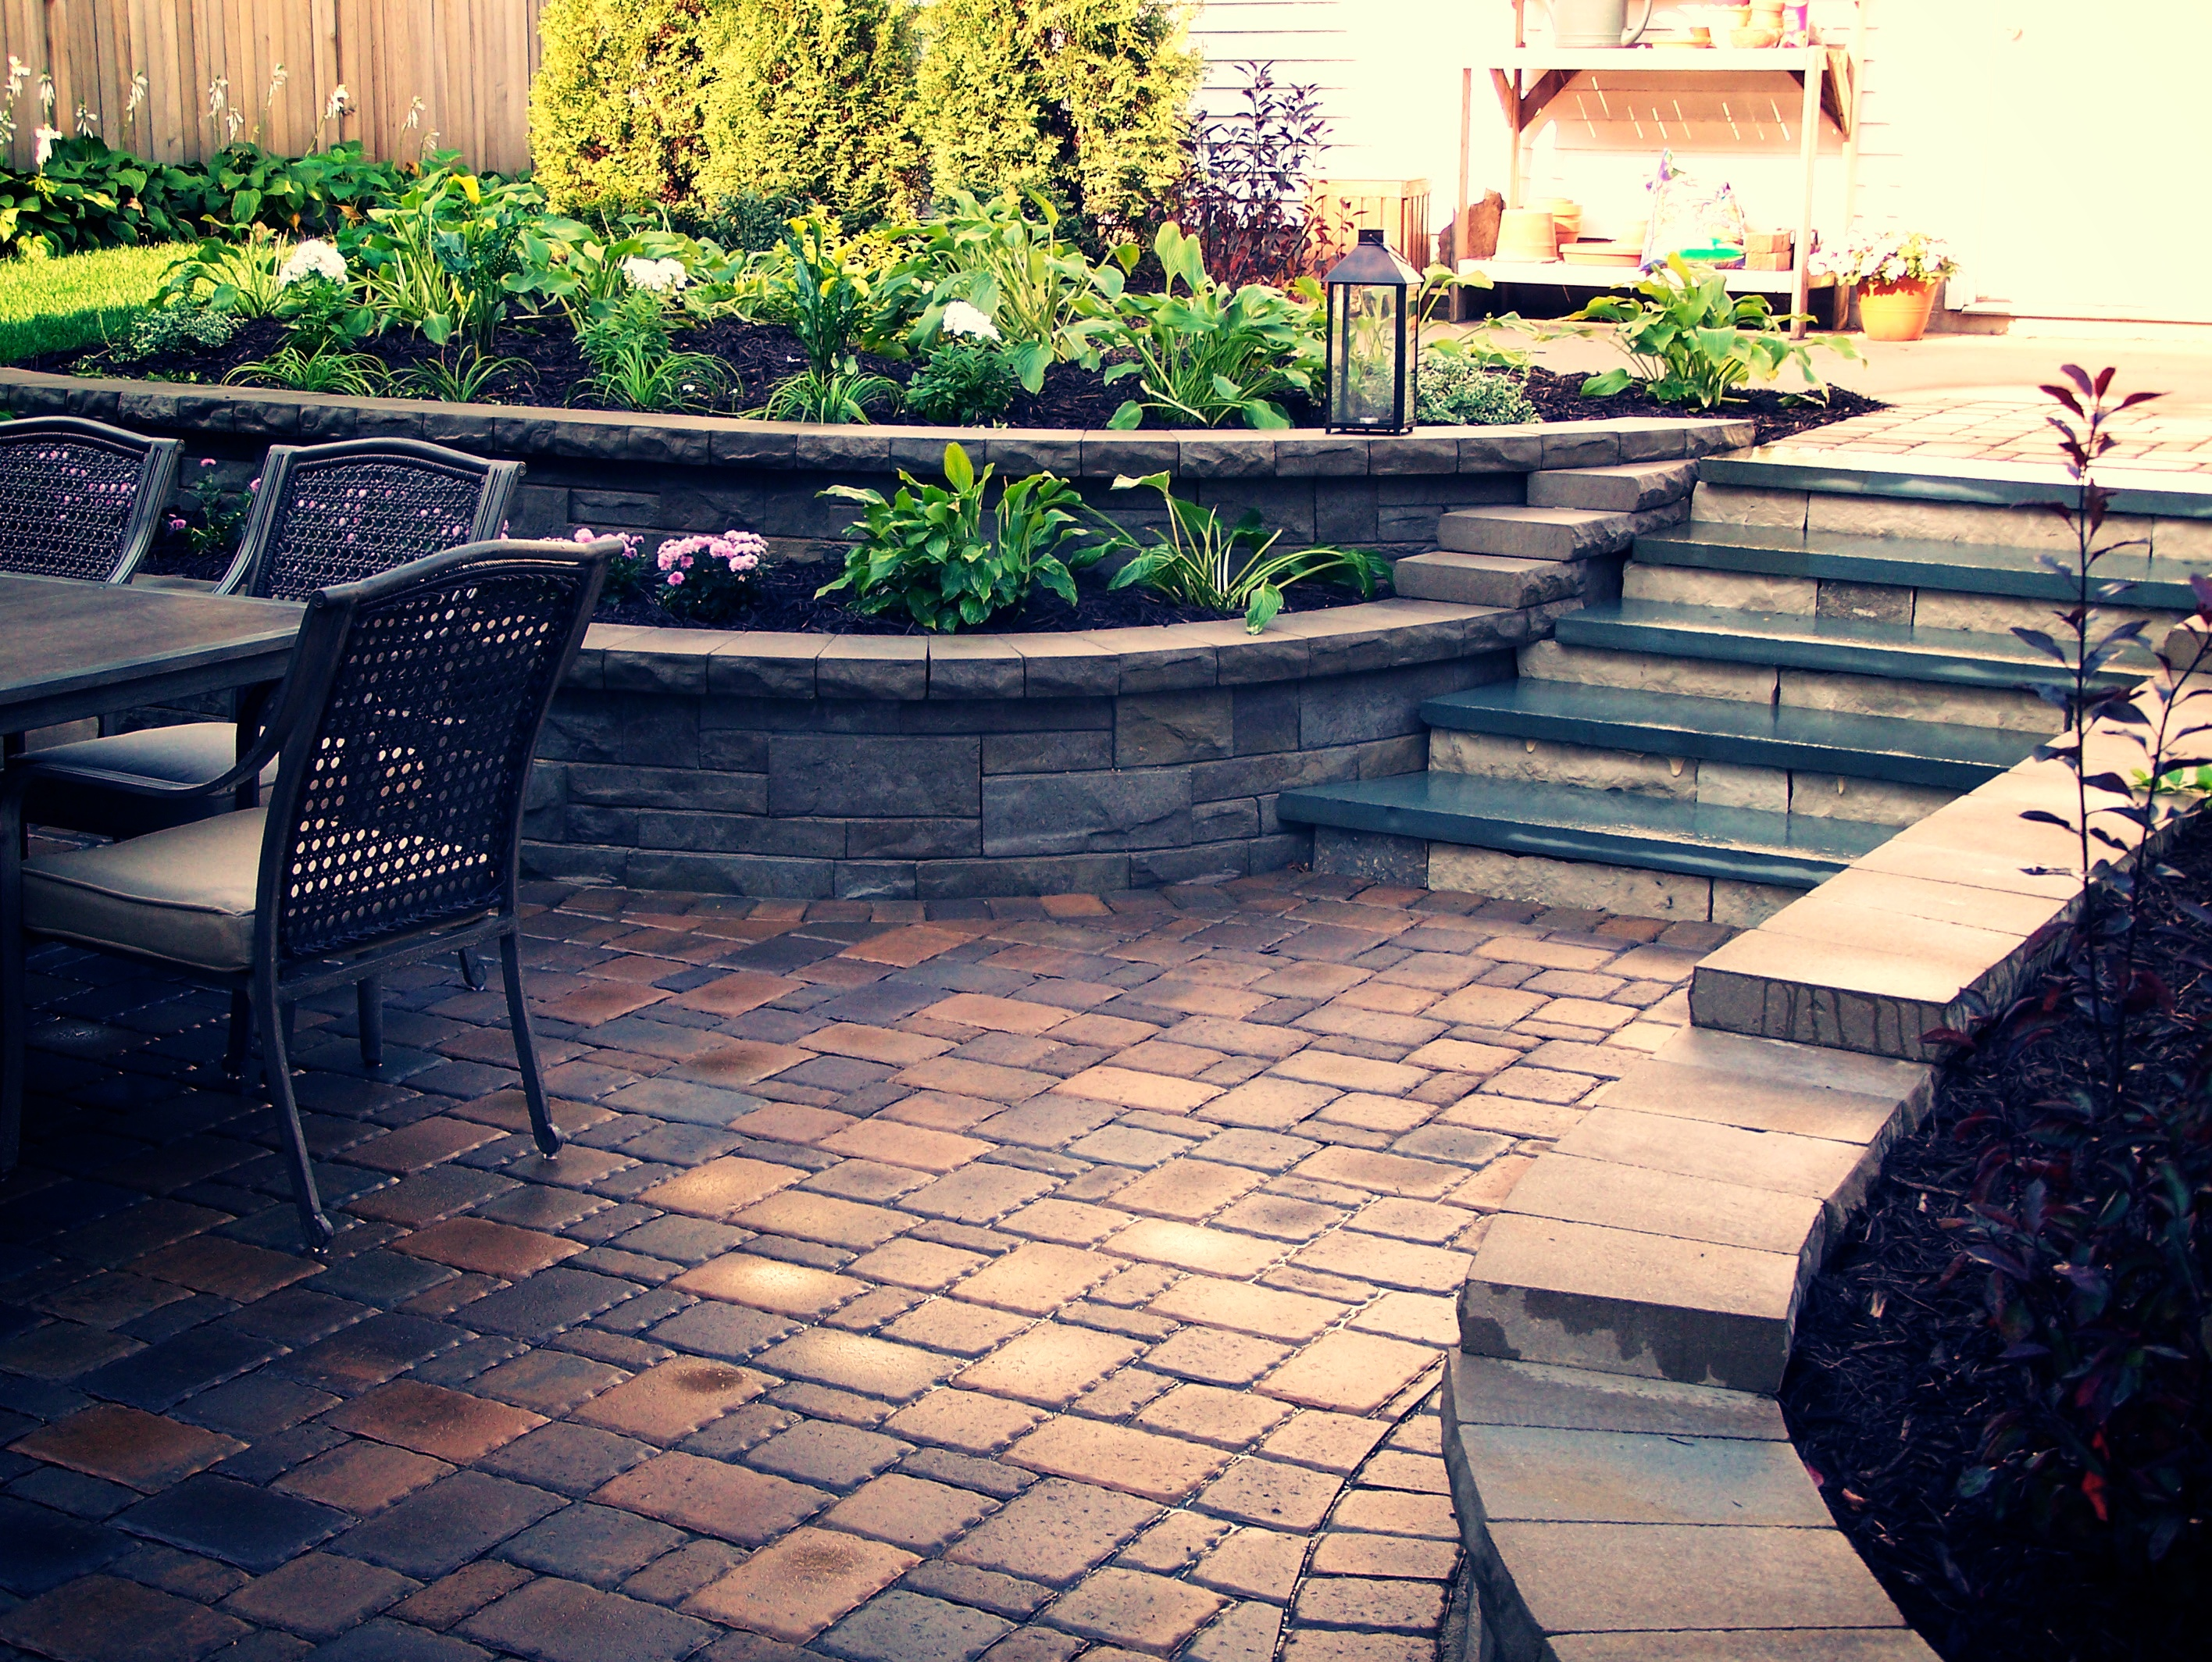 Patios - Great Goats LandscapingGreat Goats Landscaping on Patio Stone Wall Ideas id=70818